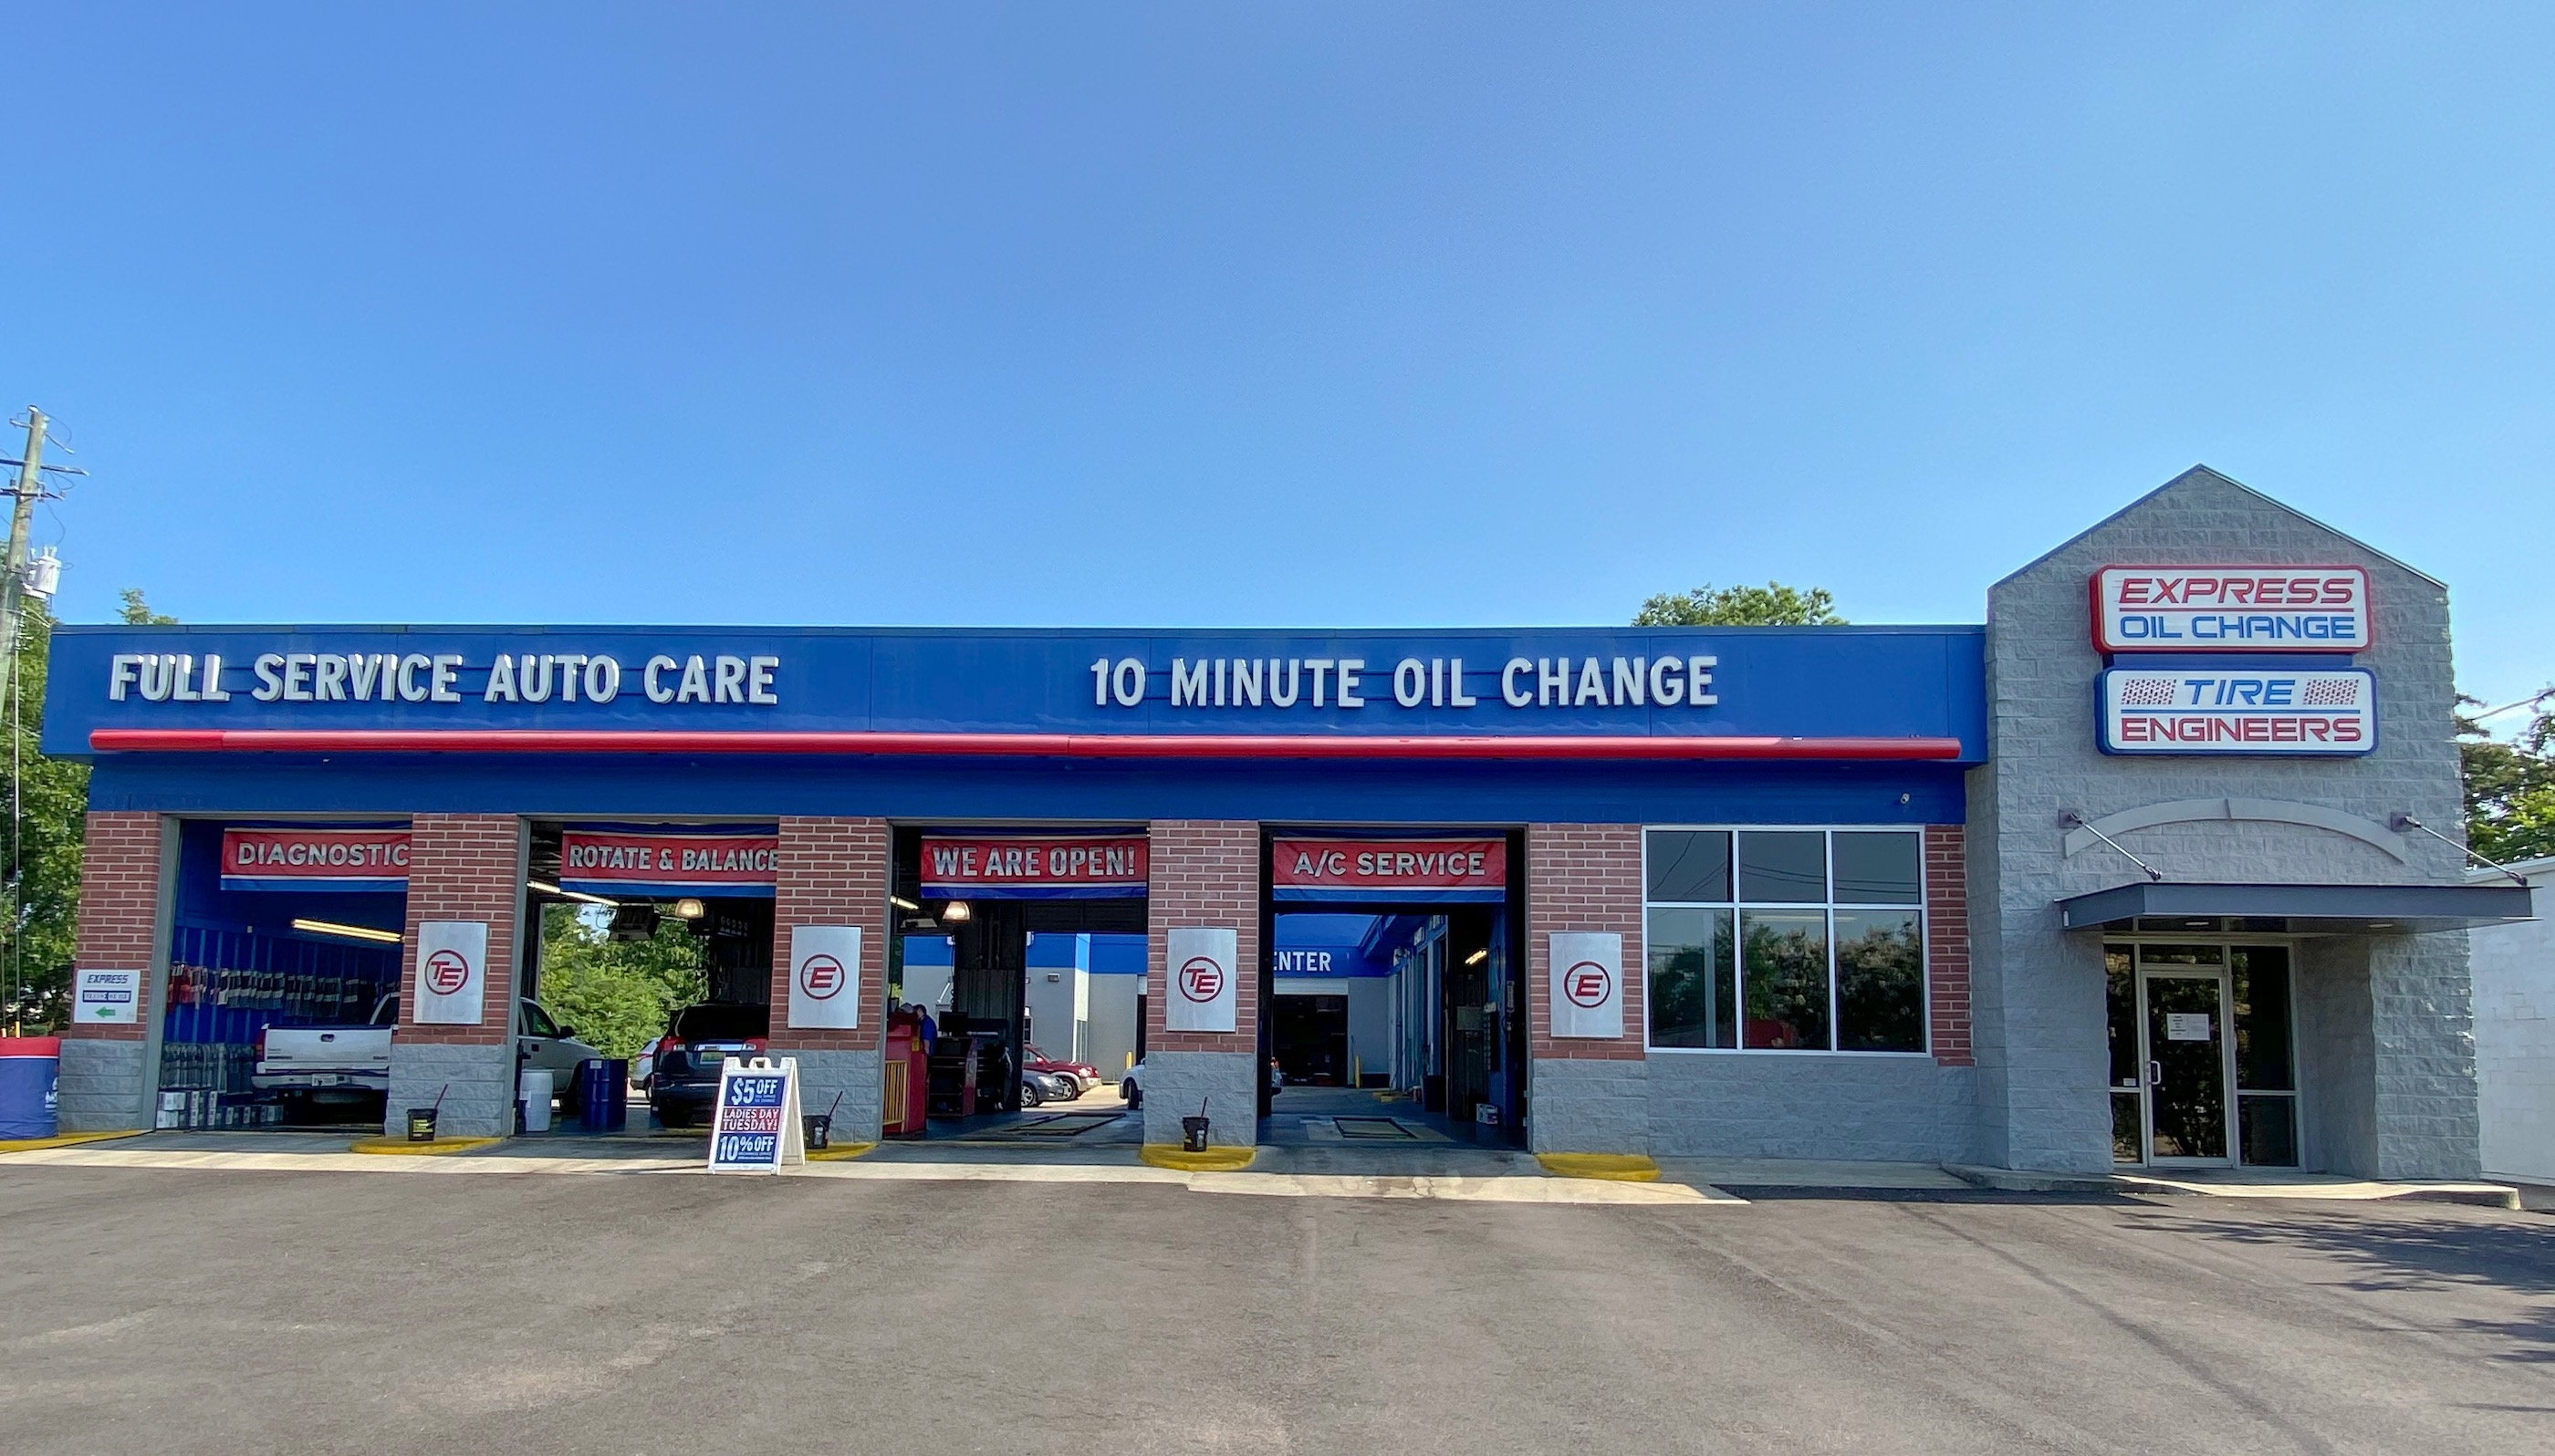 Express Oil Change & Tire Engineers Gardendale, AL - East store